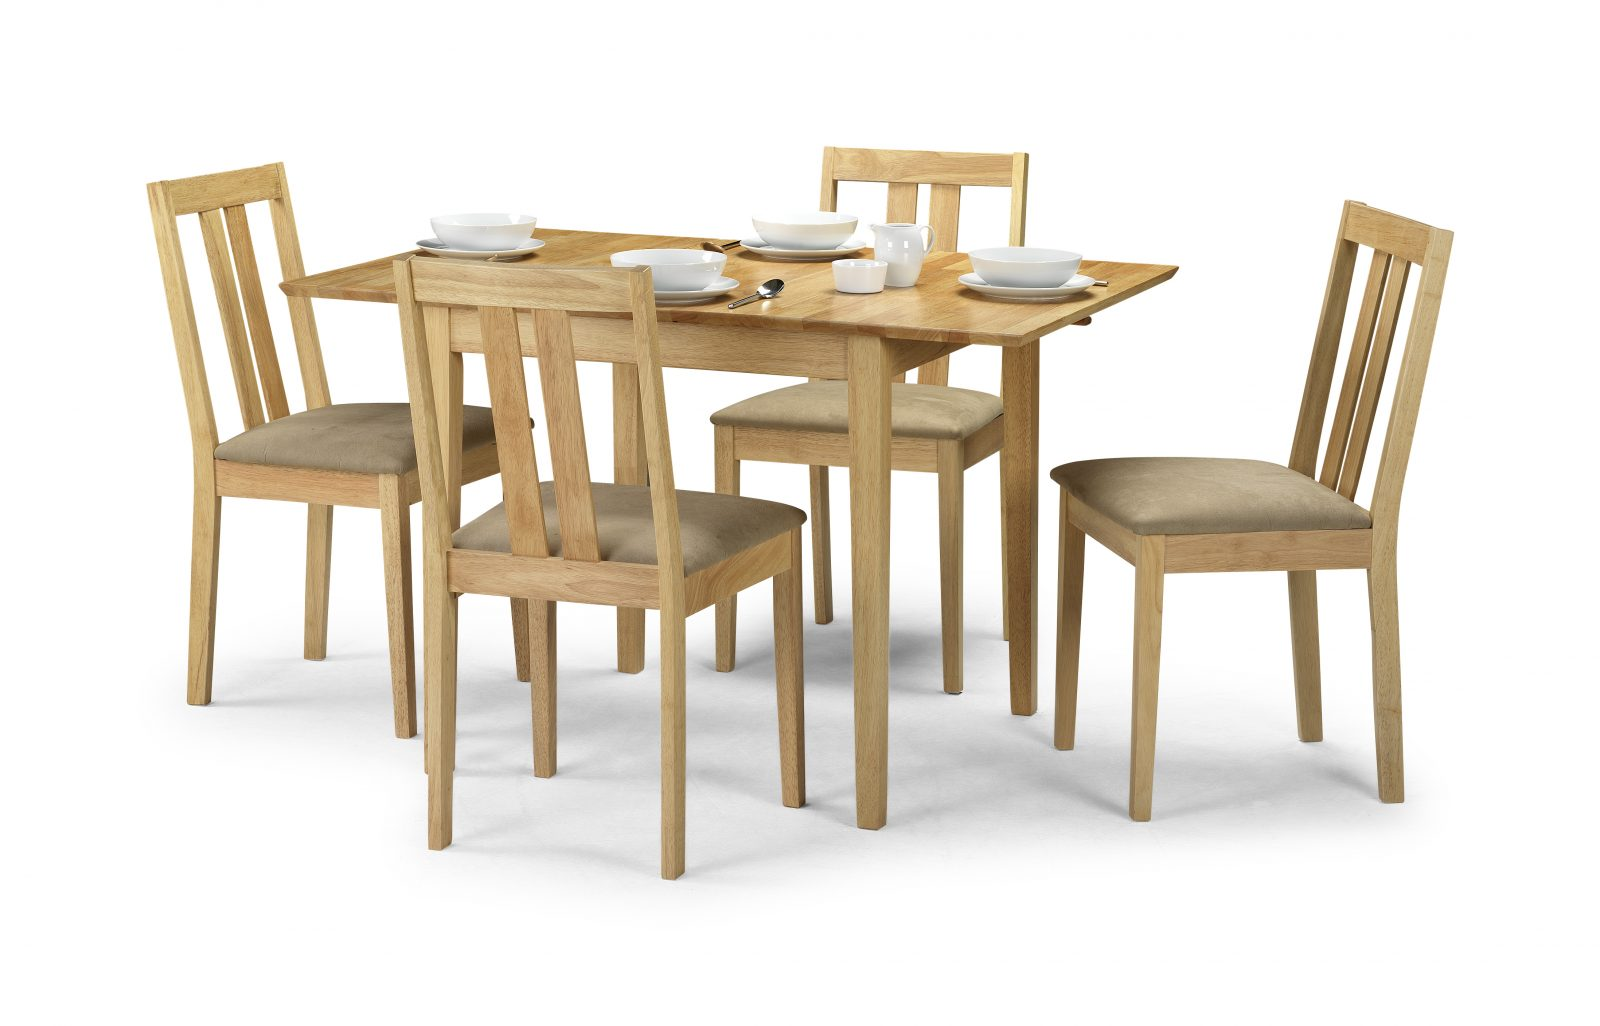 Rufford Dining Table + 4 Chairs